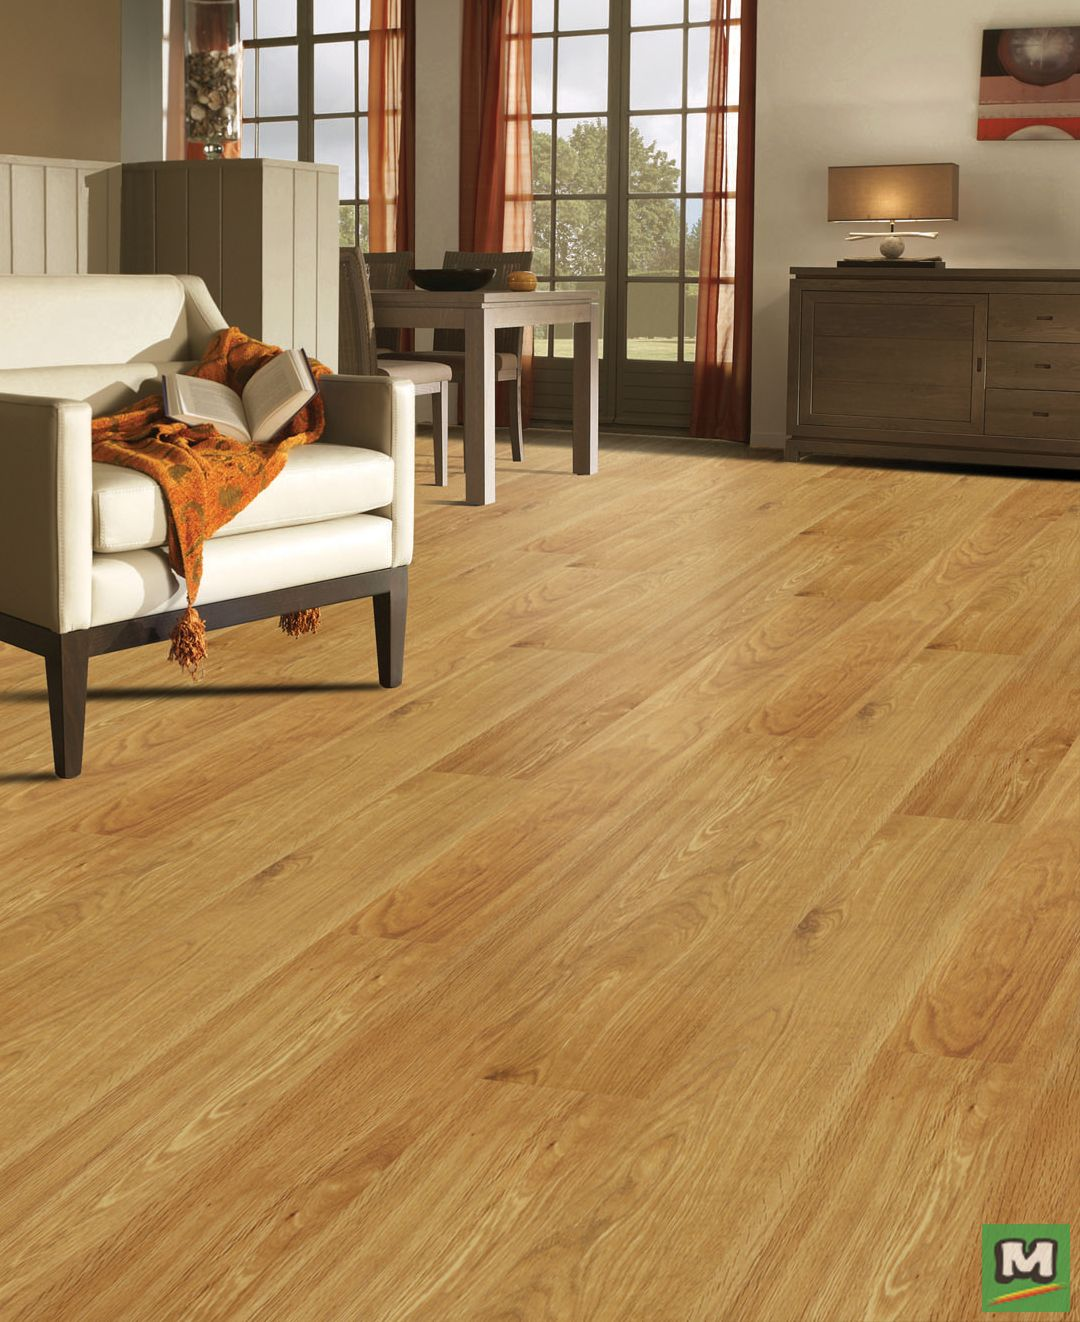 Want easy to install, beautiful wood floors? Then, choose